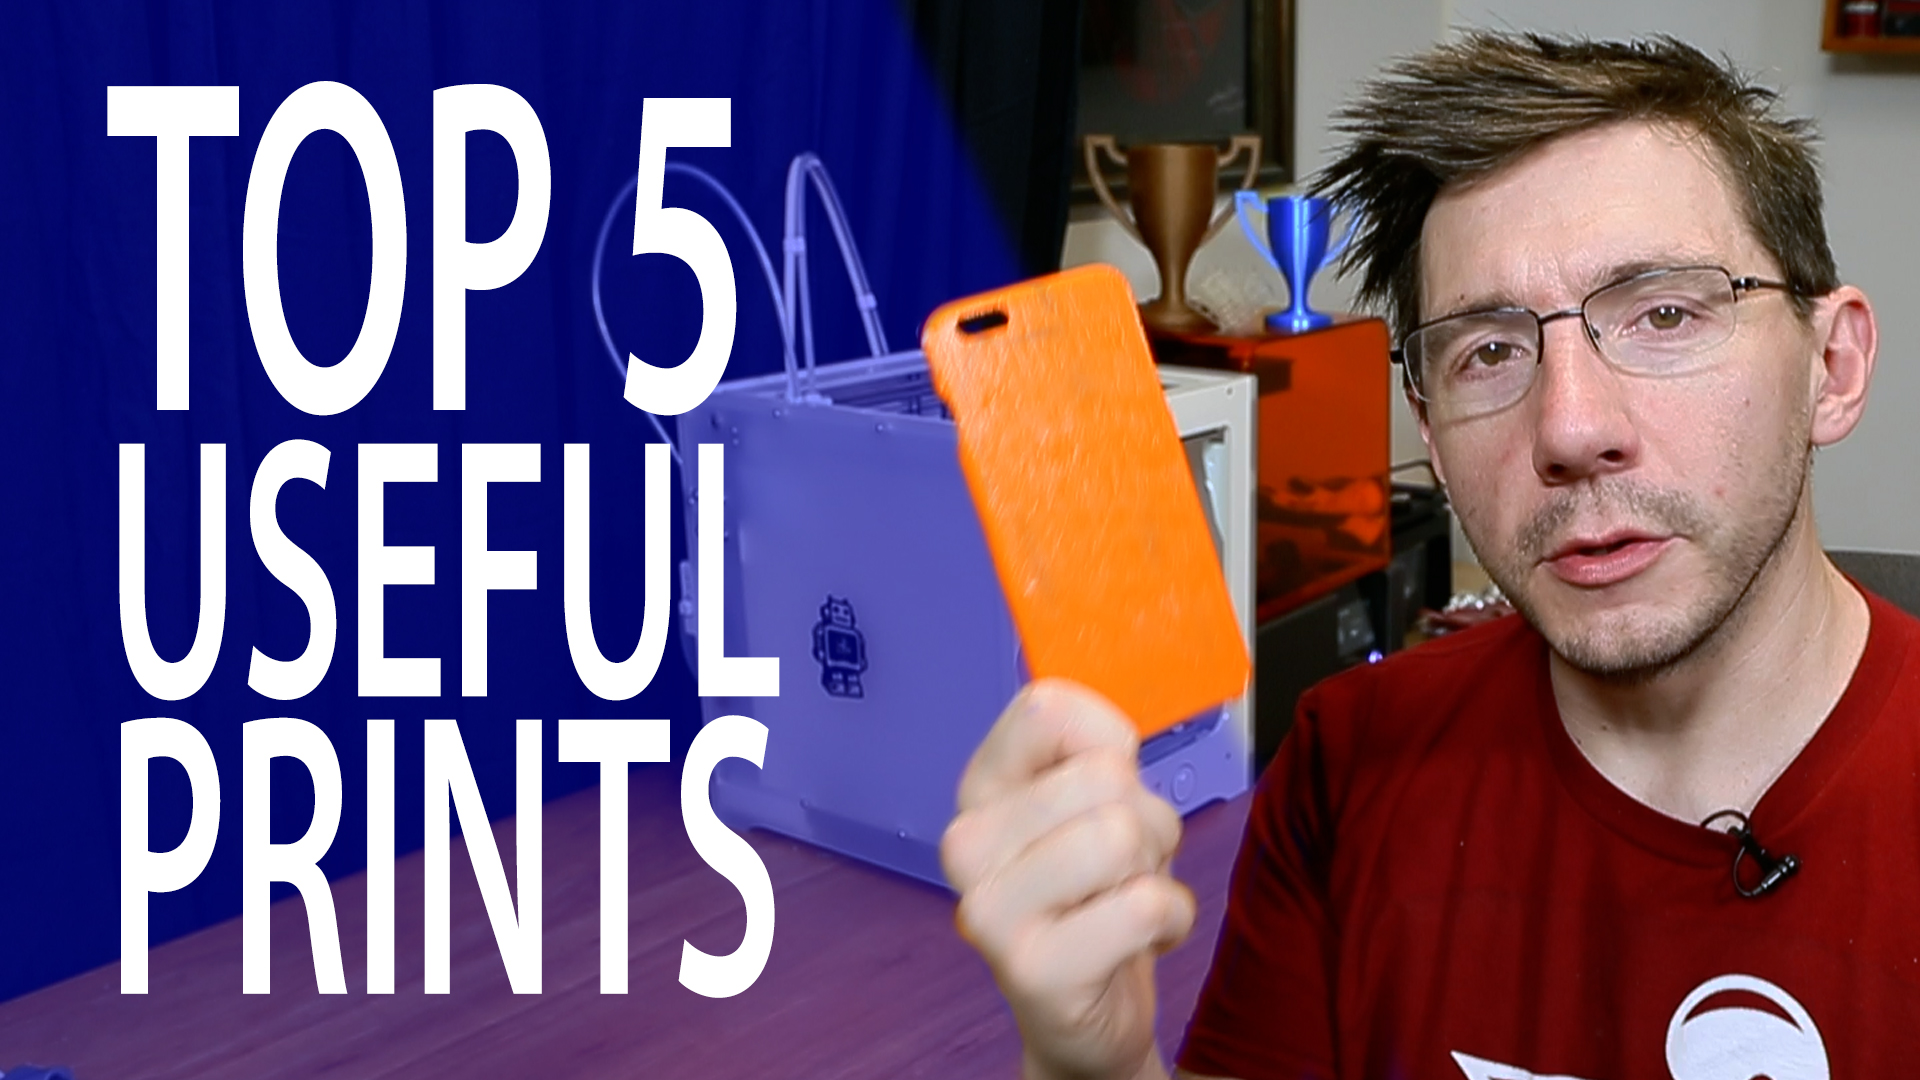 Top 5 Practical 3D Prints